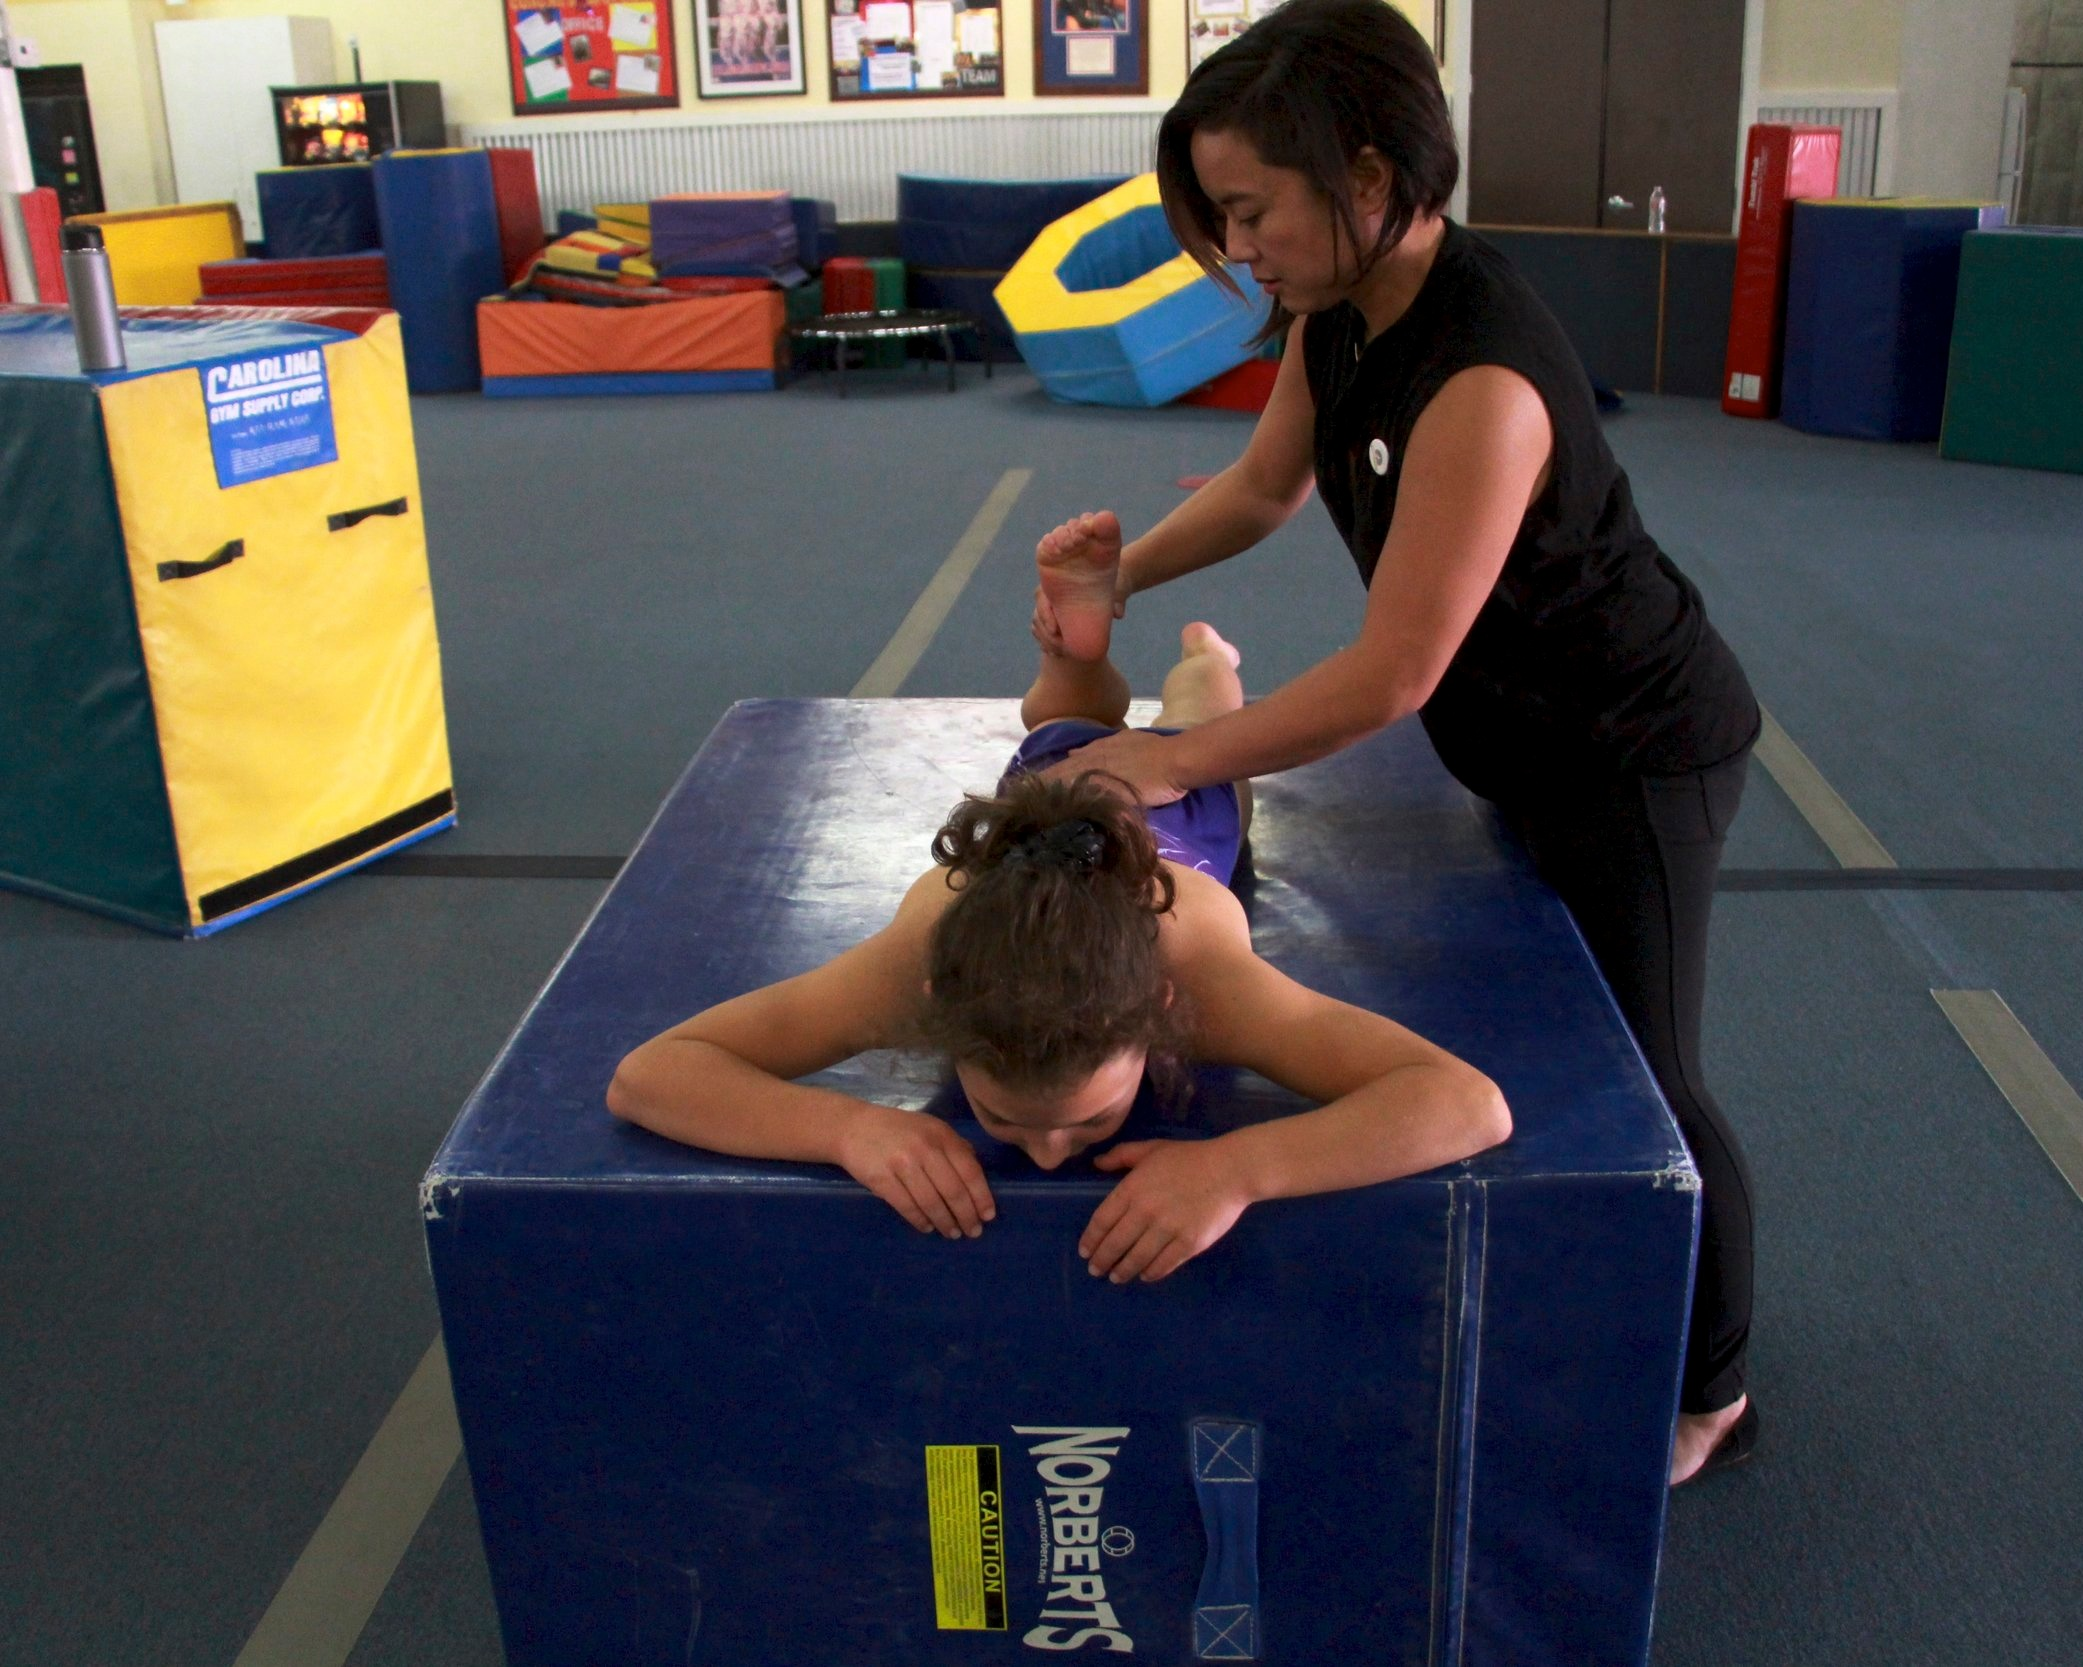 Sports / Dance Team Care - Movement ScreensWeekly visits from physical therapist at your gymWorkshops for your athletes or your coaches:Back extension without painEffective jumping and landing mechanicsGetting the most out of your warm up routinePost workout recovery exercisesPilates classesFOR INQUIRIES, CLICK HERE